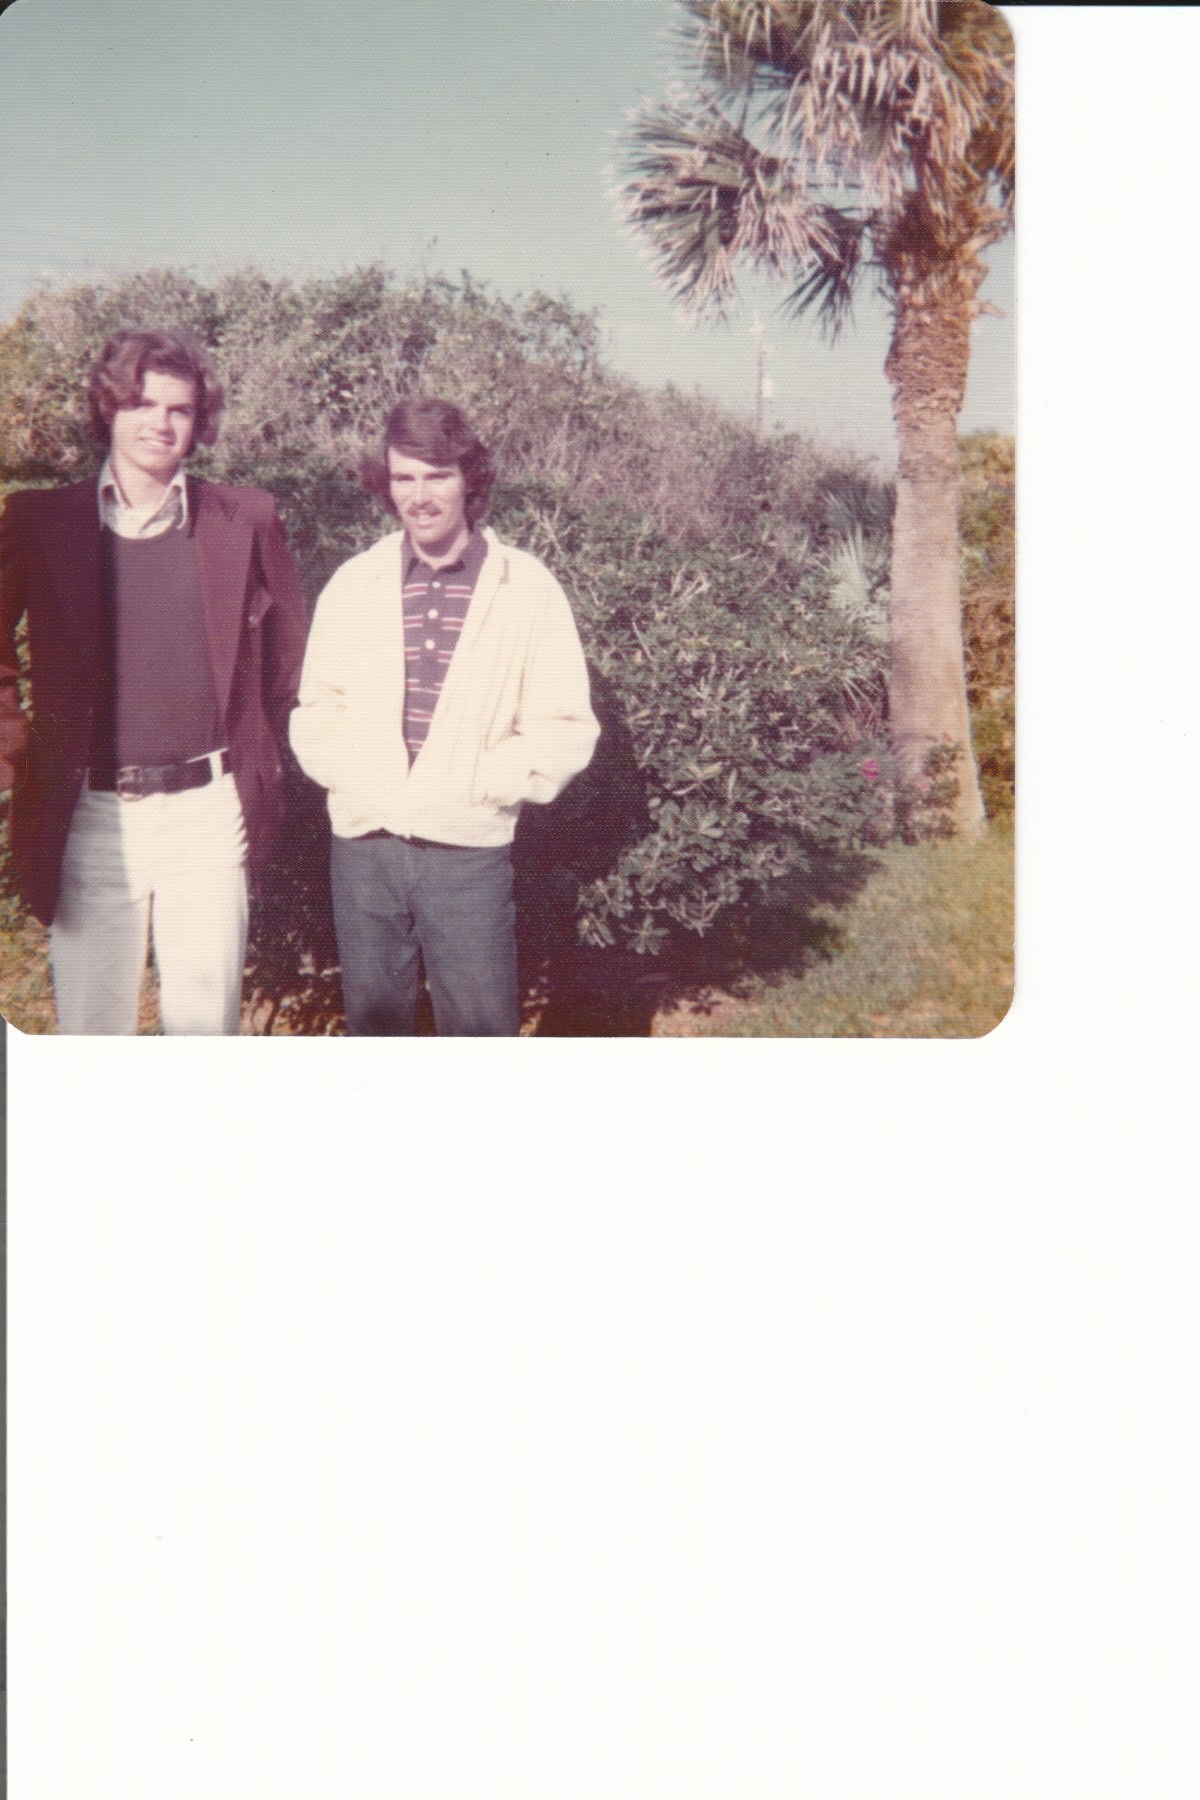 Scott and I when I visited him in Ormond Beach in February 1974,  we were both 17 years old.